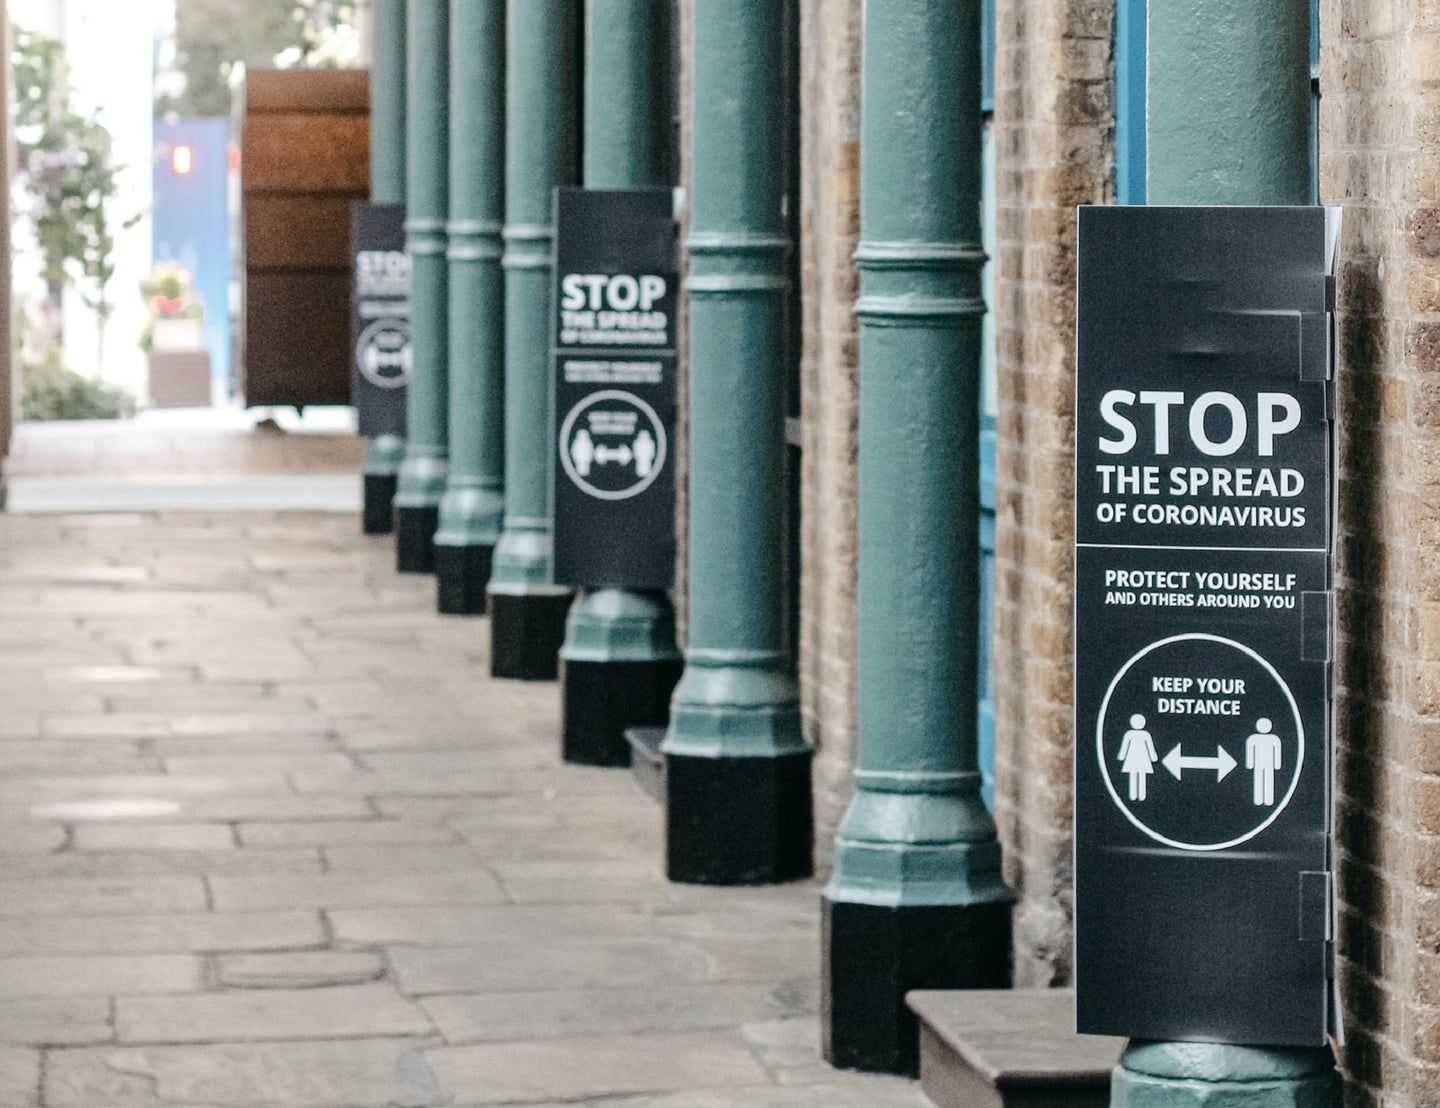 Signs on a city street imploring people to socially distance